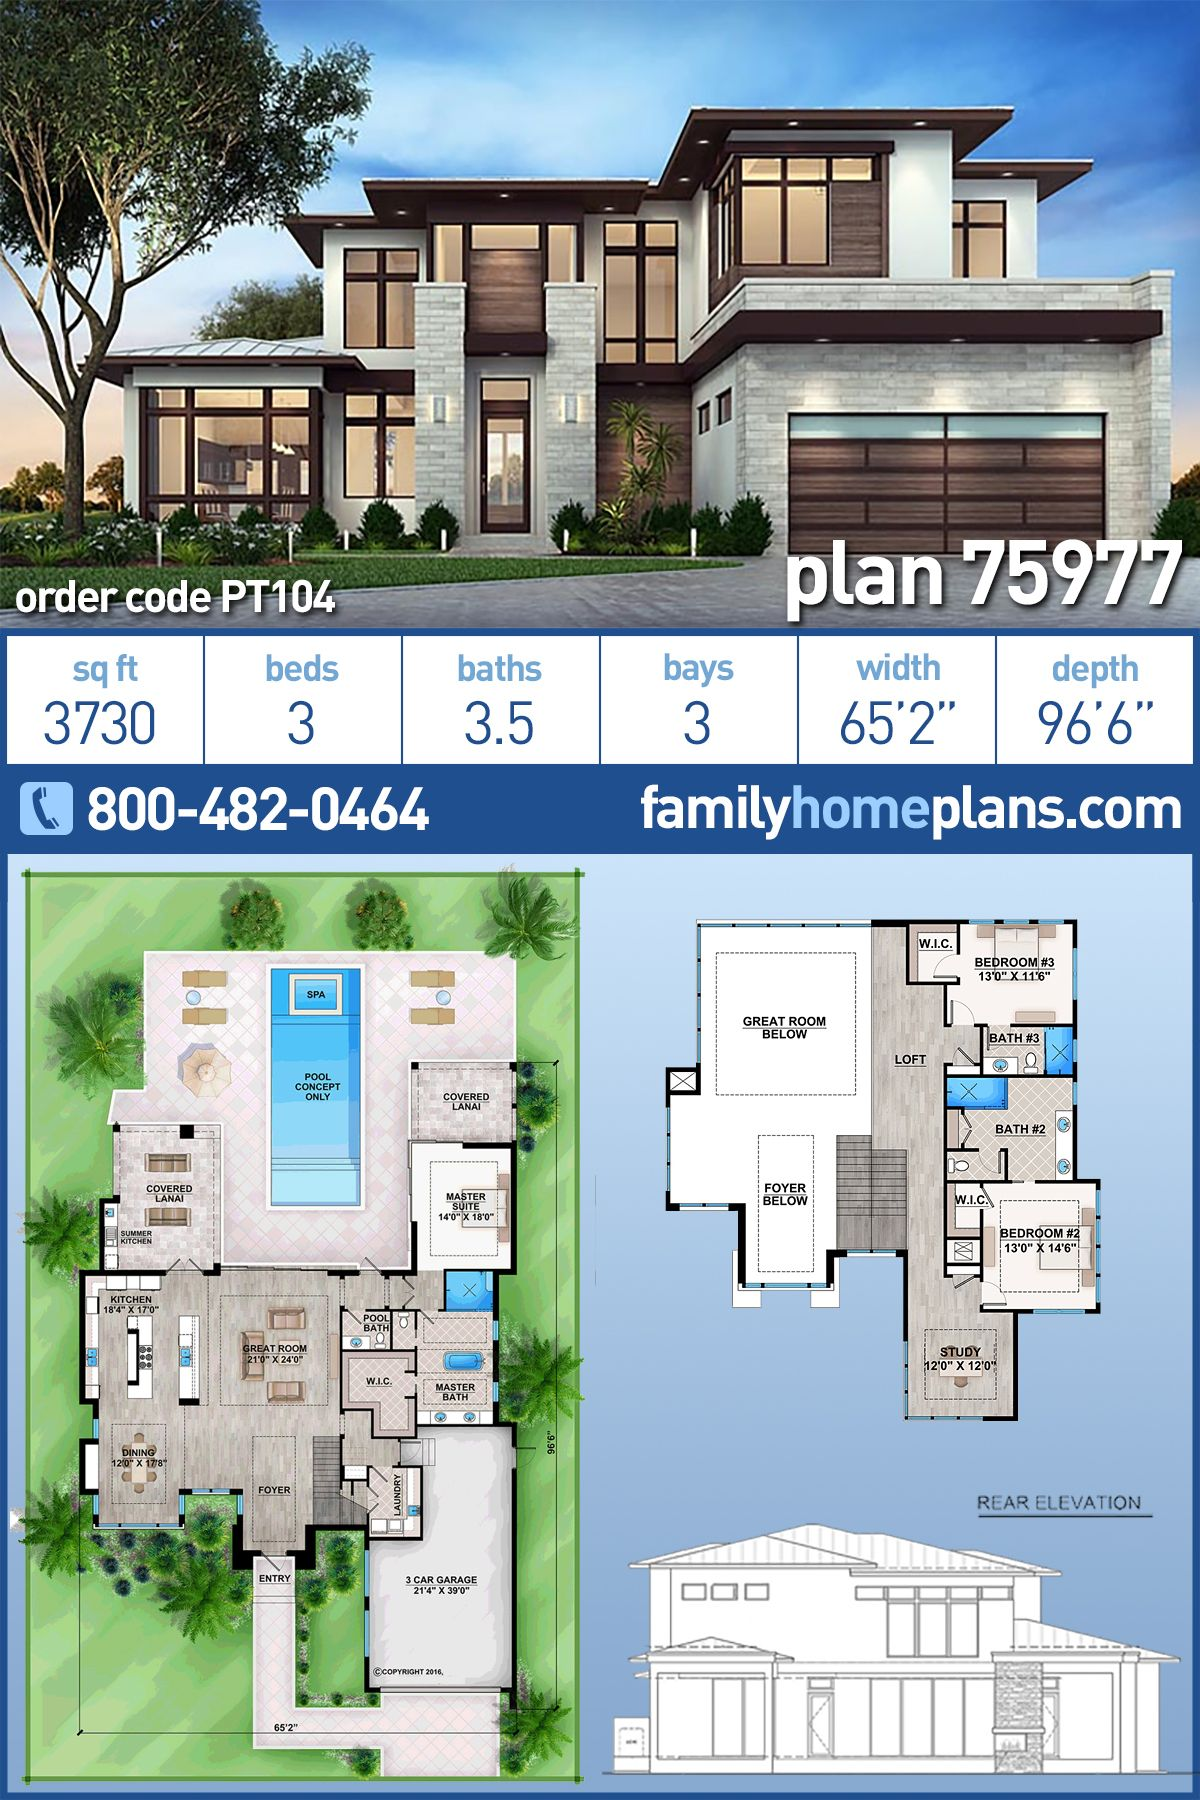 Modern Style House Plan 75977 With 3 Bed 4 Bath 3 Car Garage Modern House Floor Plans Modern Style House Plans Family House Plans